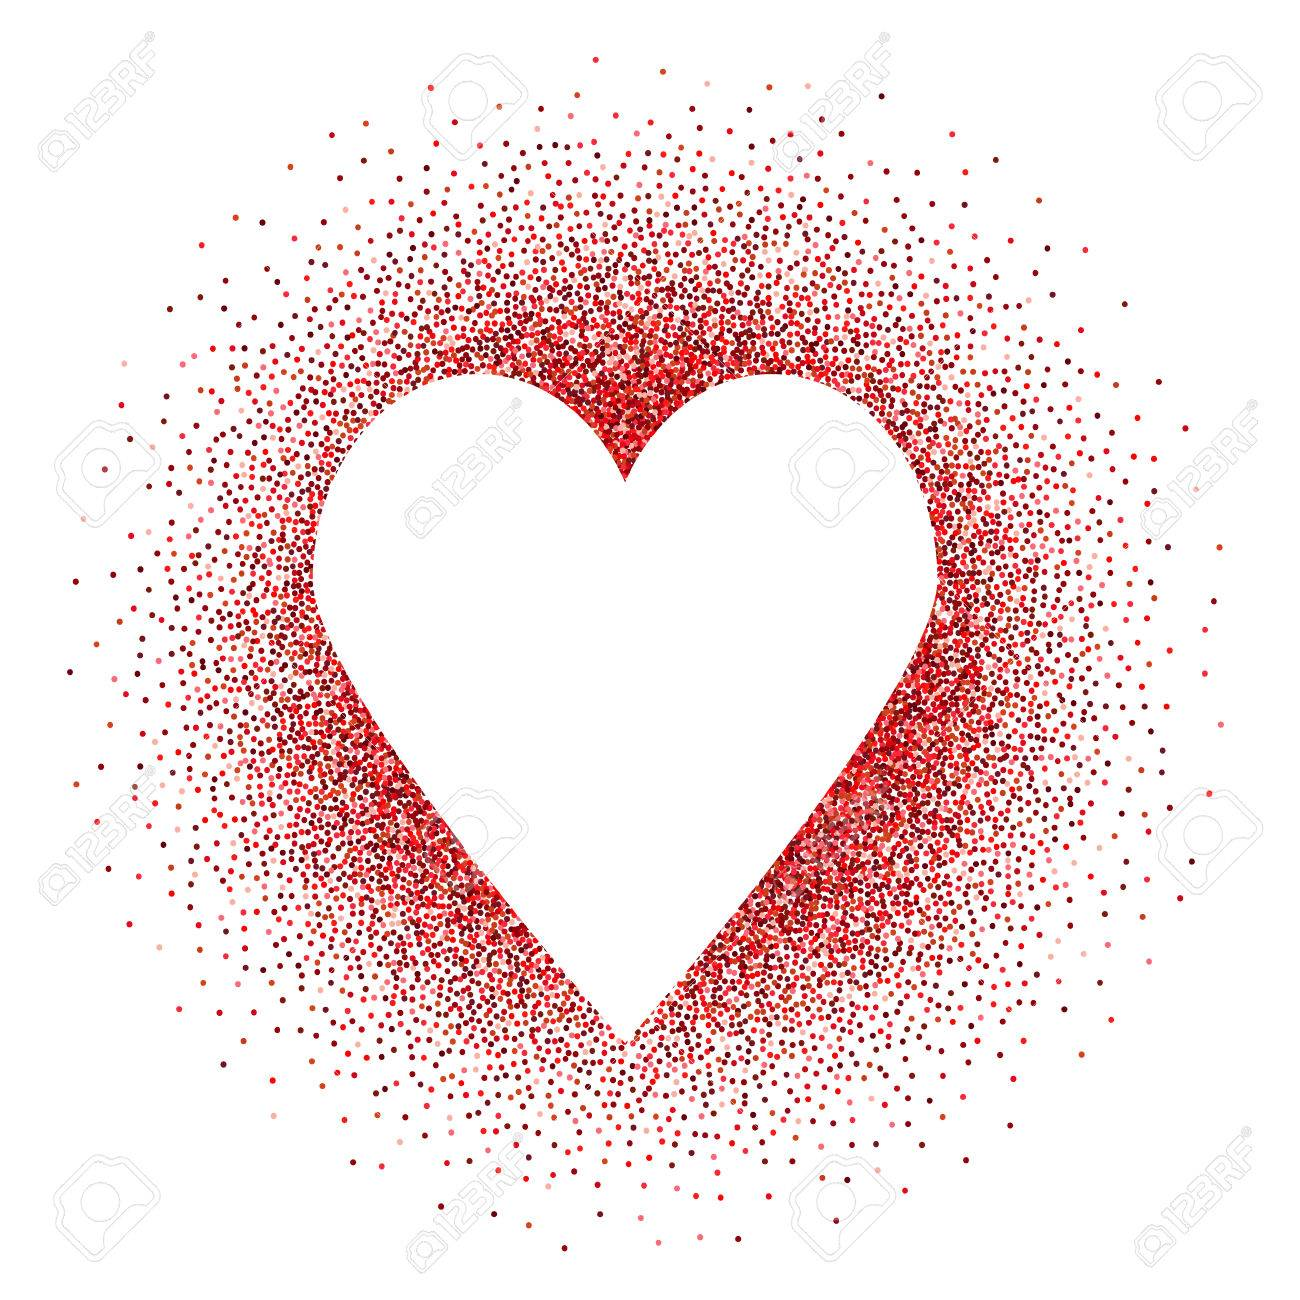 White Heart In Red Glitters Vector Background Love Symbol Design